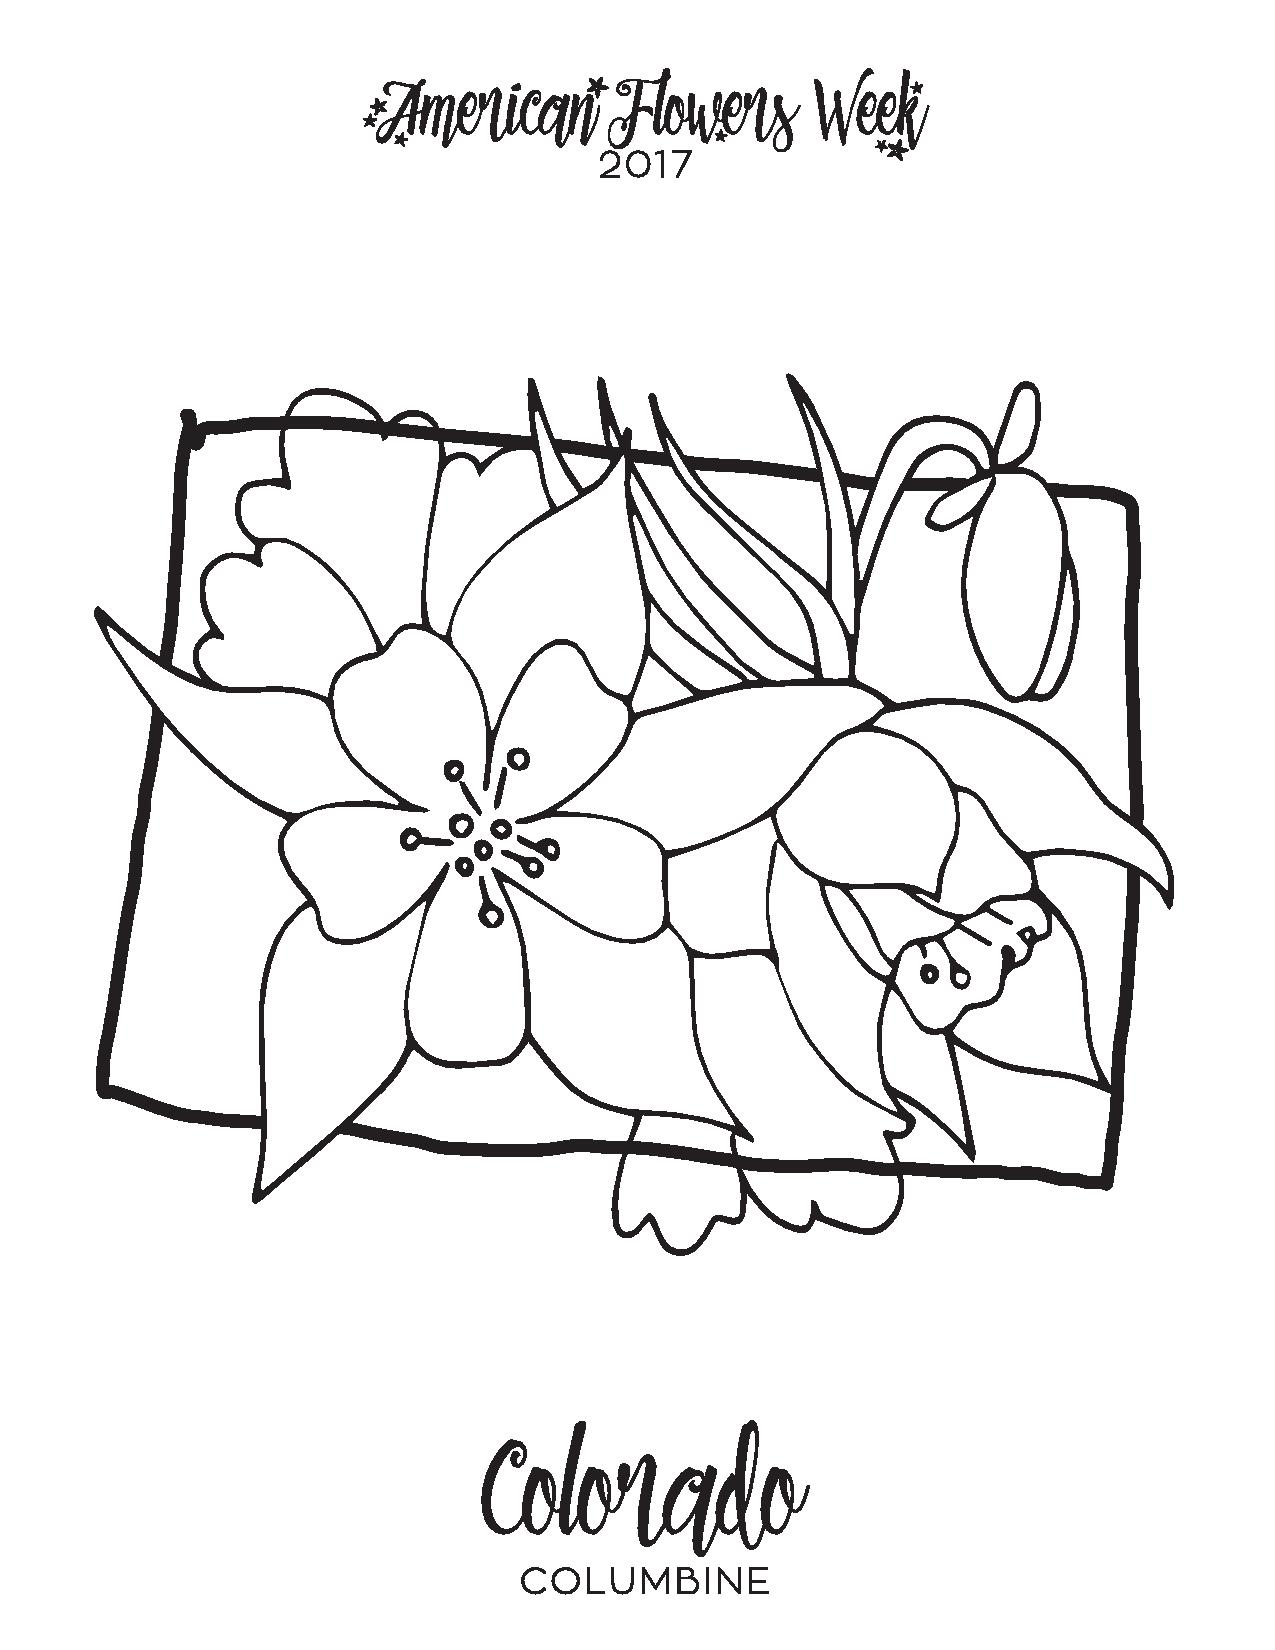 Columbine Flower Line Drawing : State flowers — free coloring pages american week